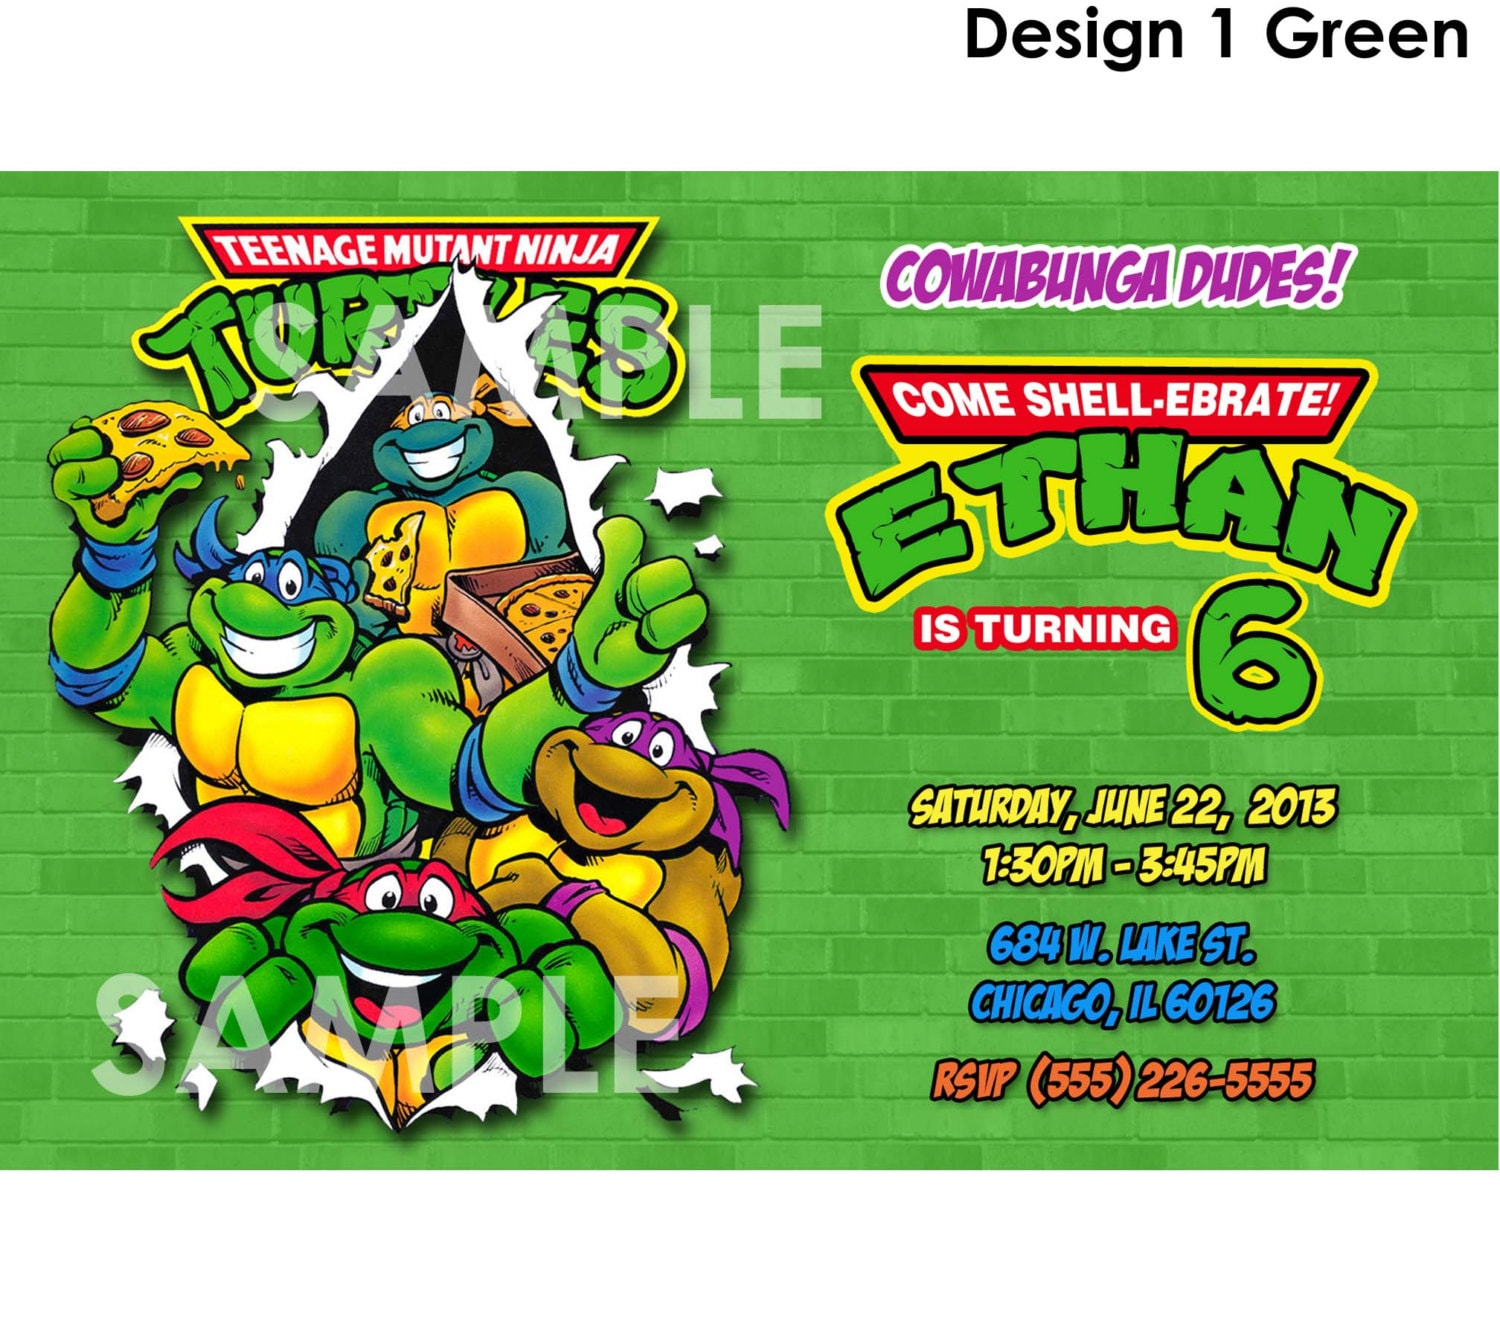 photograph regarding Printable Ninja Turtle Invitations identify Ninja Turtle Birthday Invitation